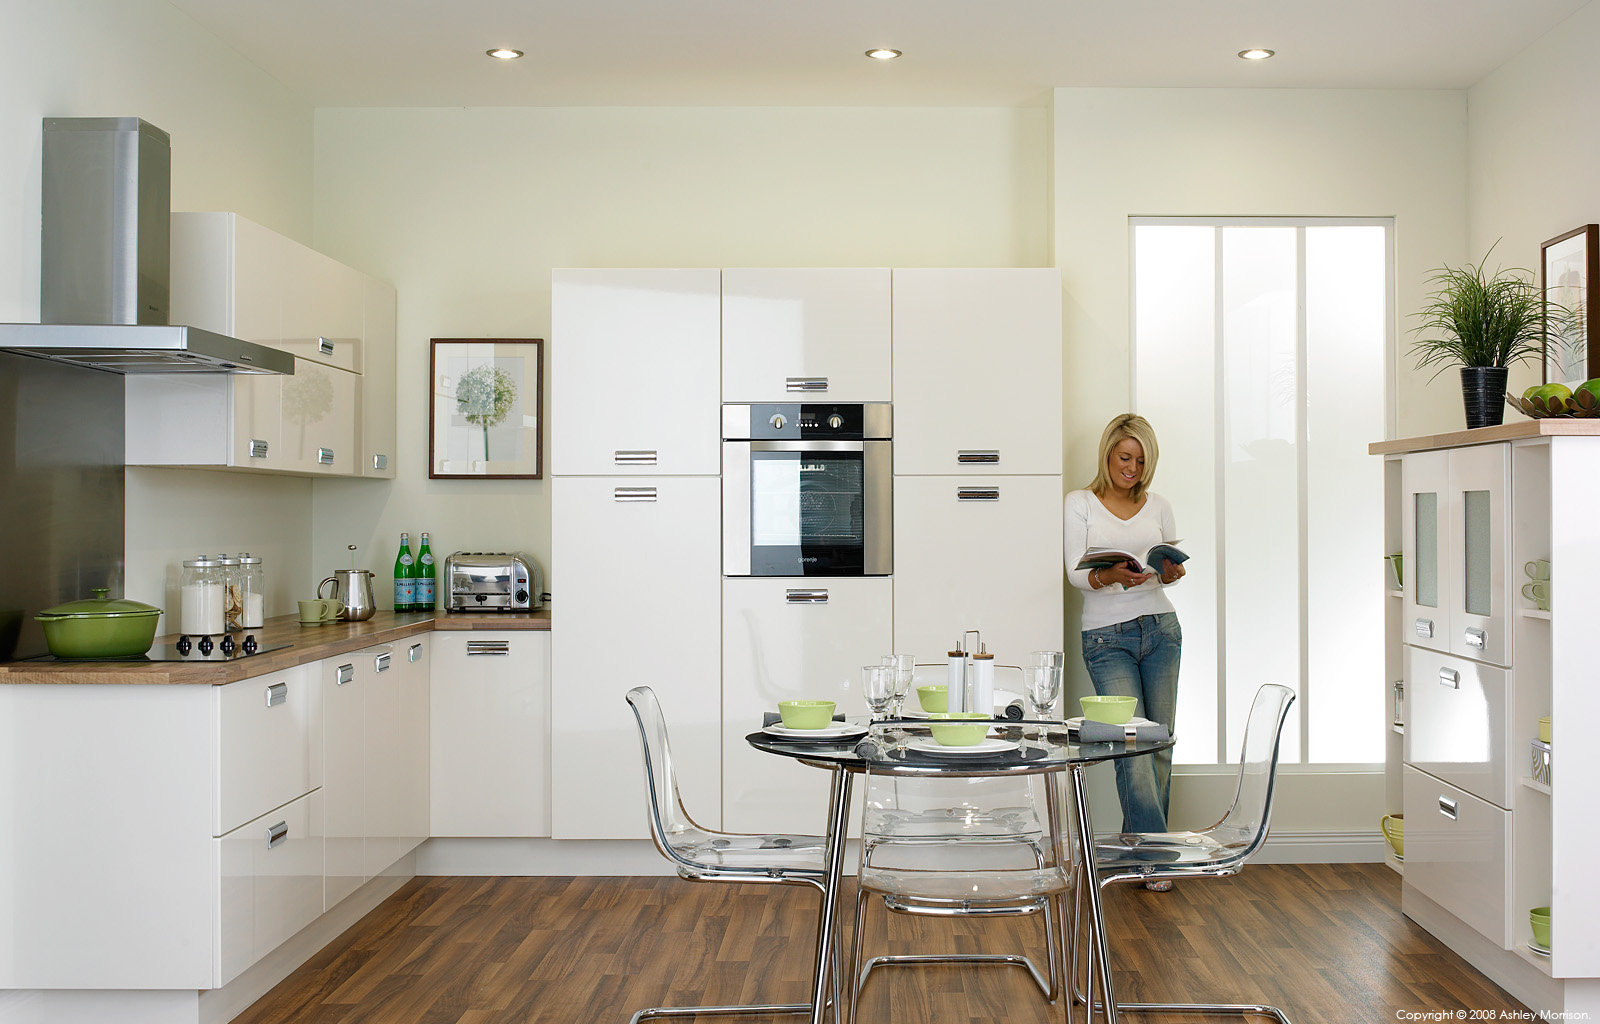 High gloss white kitchen by O&S doors.